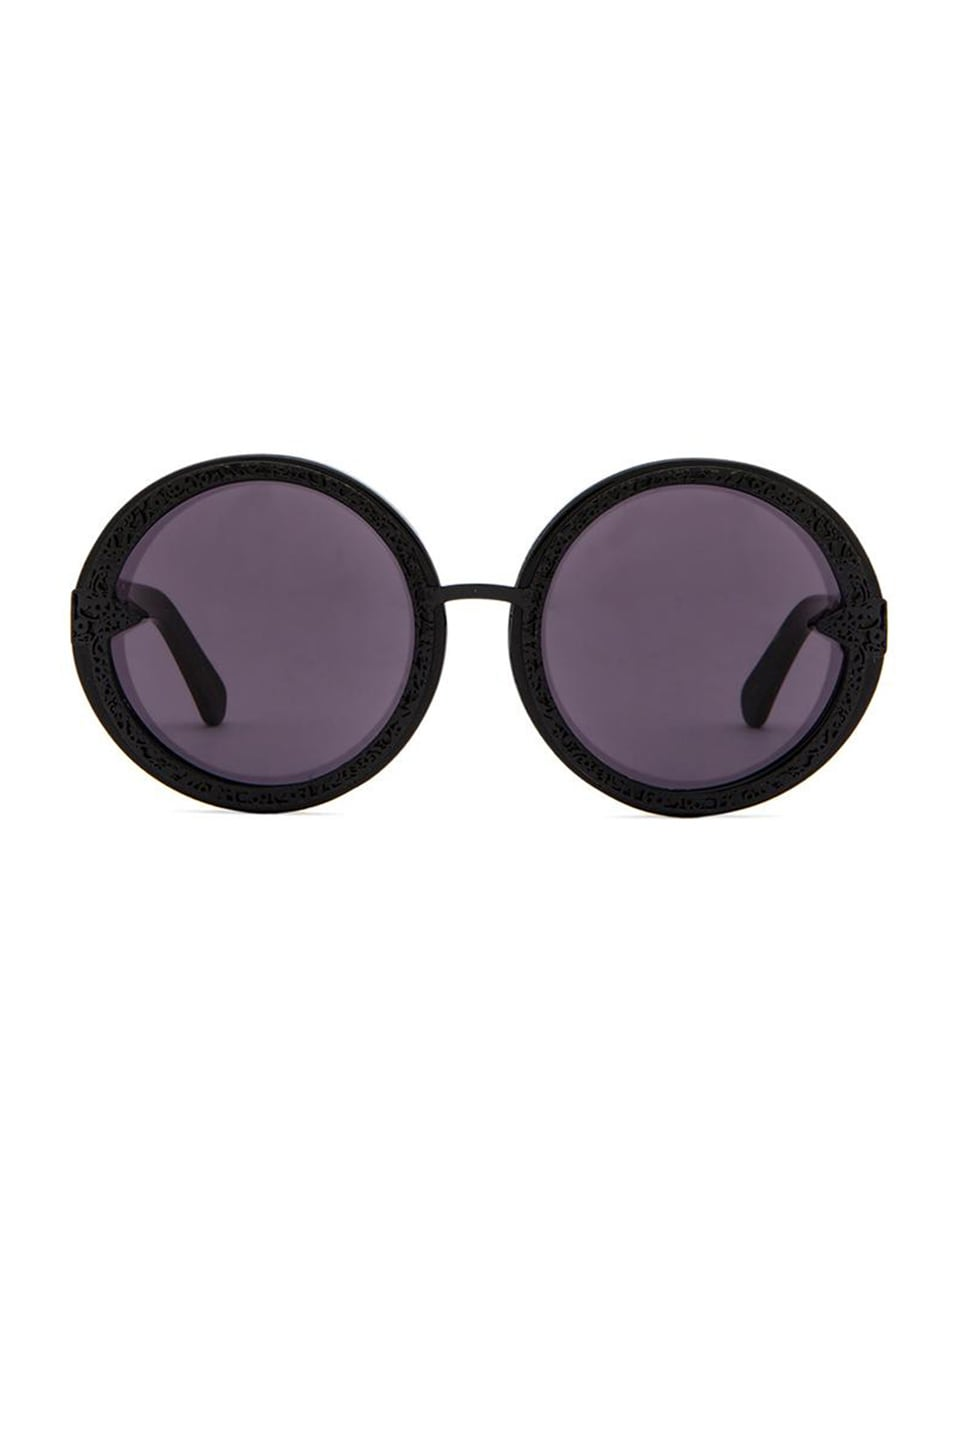 Karen Walker Orbit Filigree in Black and Shiny Black